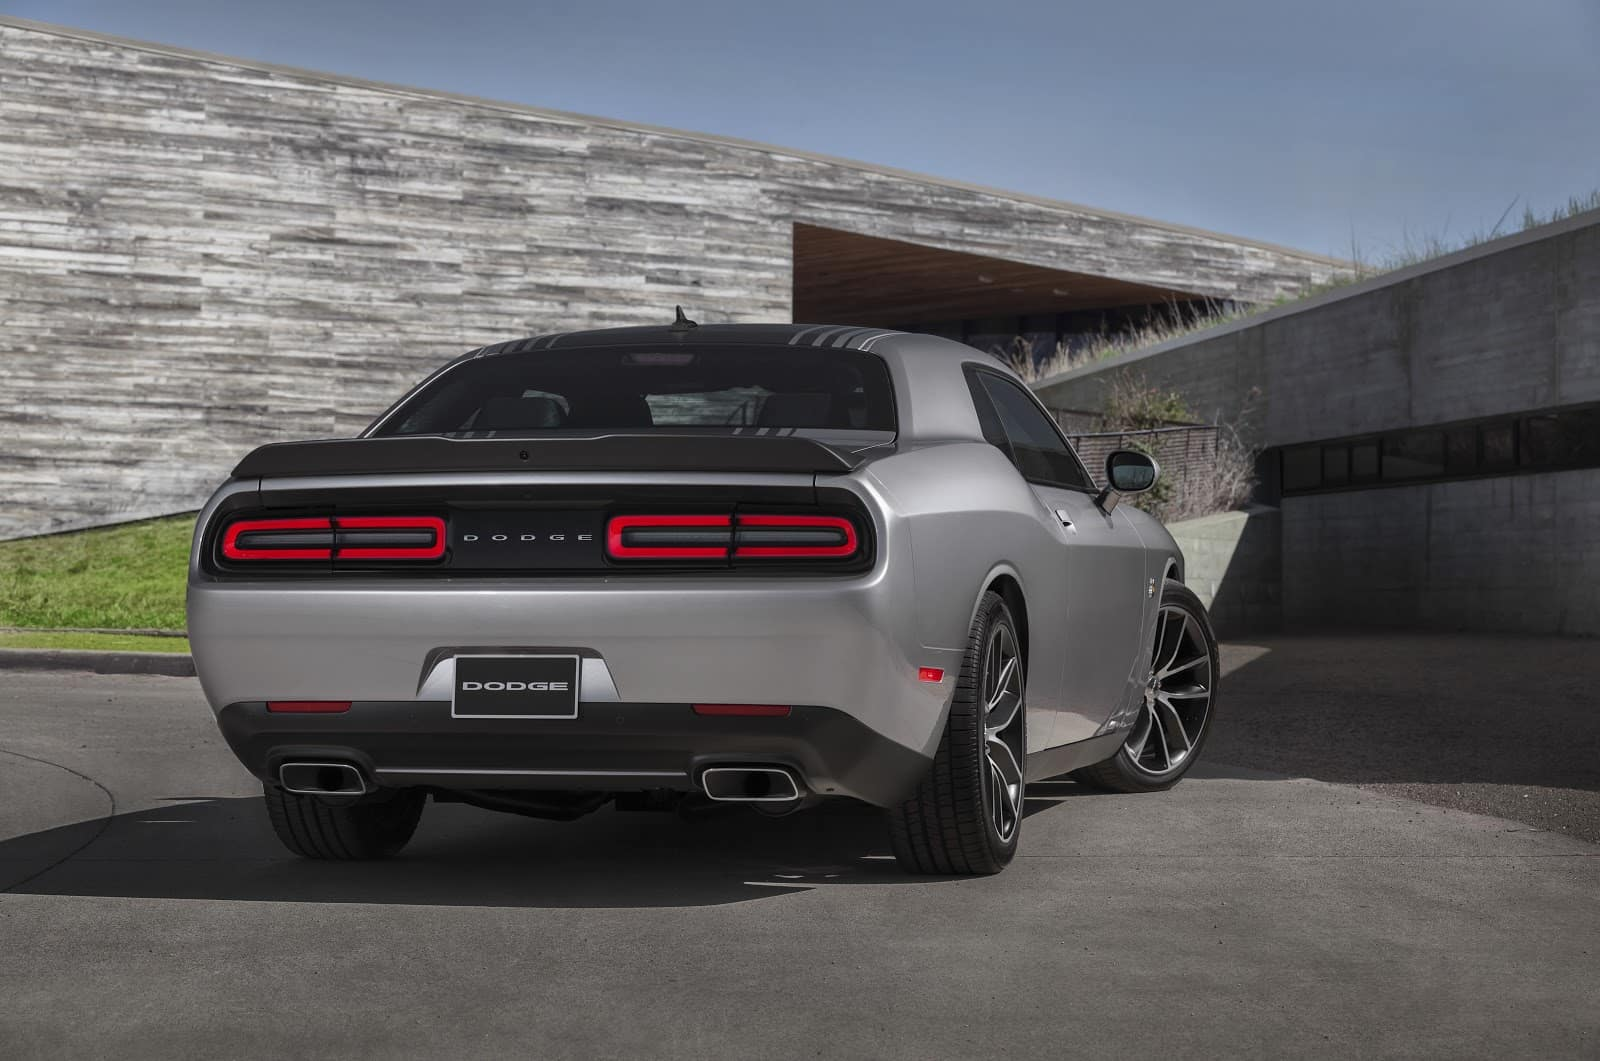 Back of Silver 2019 Dodge Challenger Showcasing Tail Lights